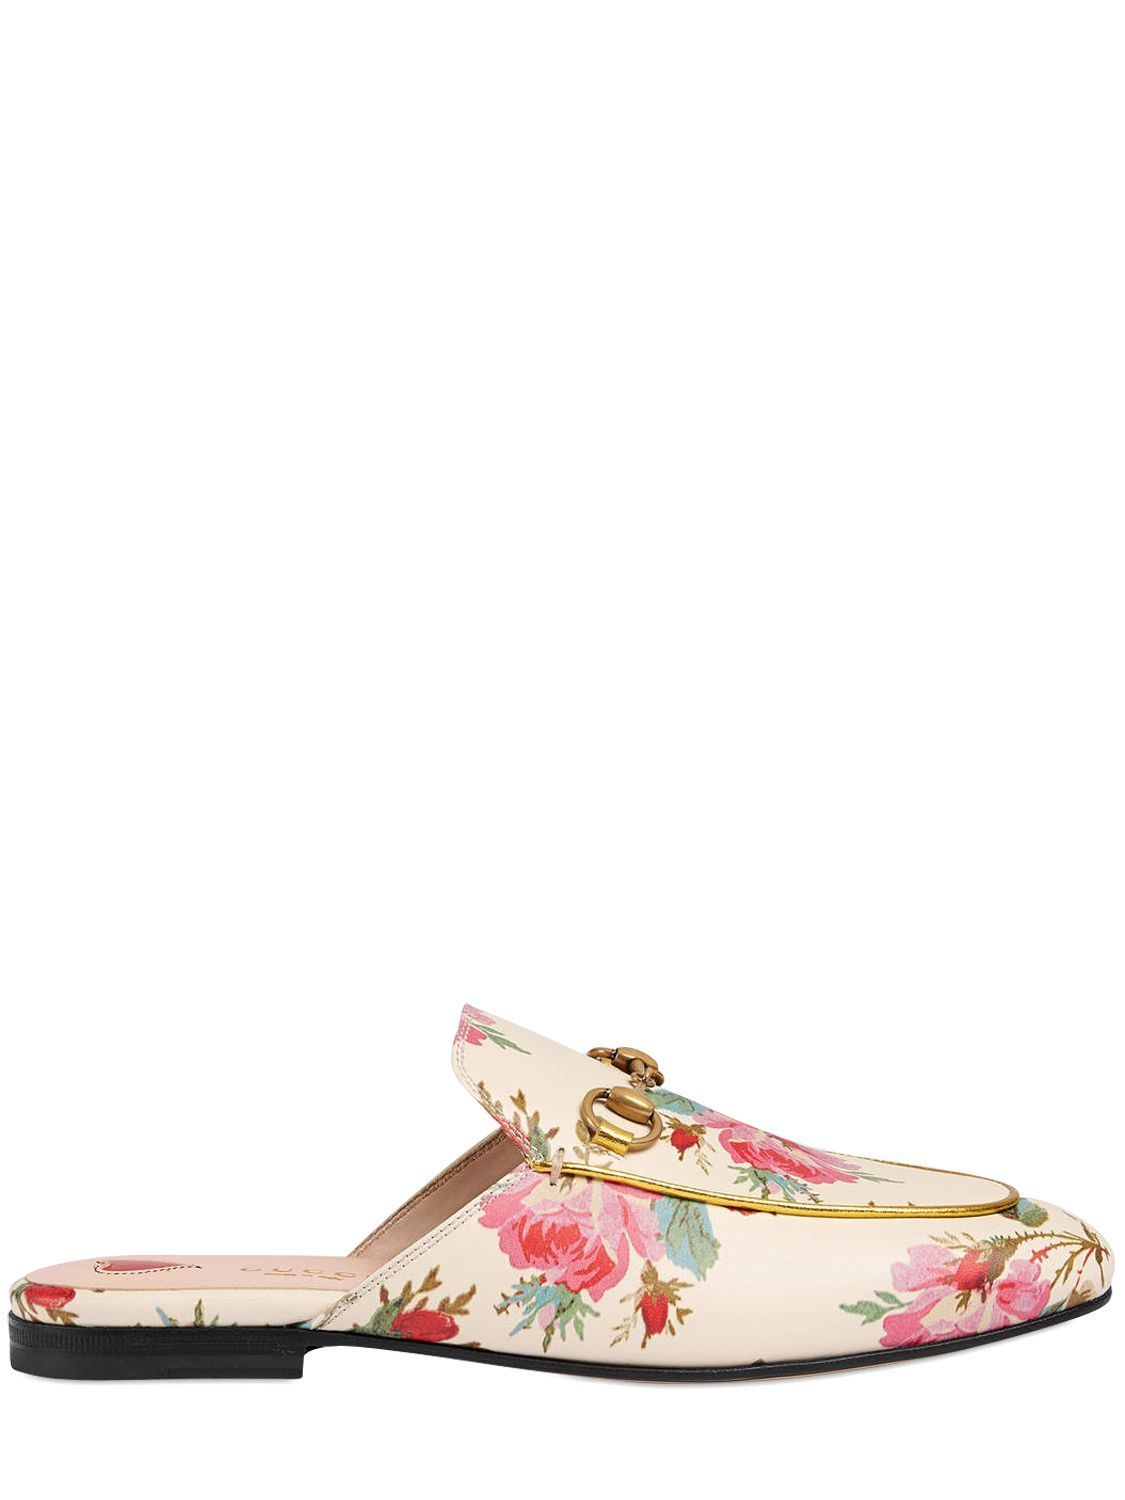 LKor4THI51 10MM PRINCETOWN FLORAL LEATHER MULES